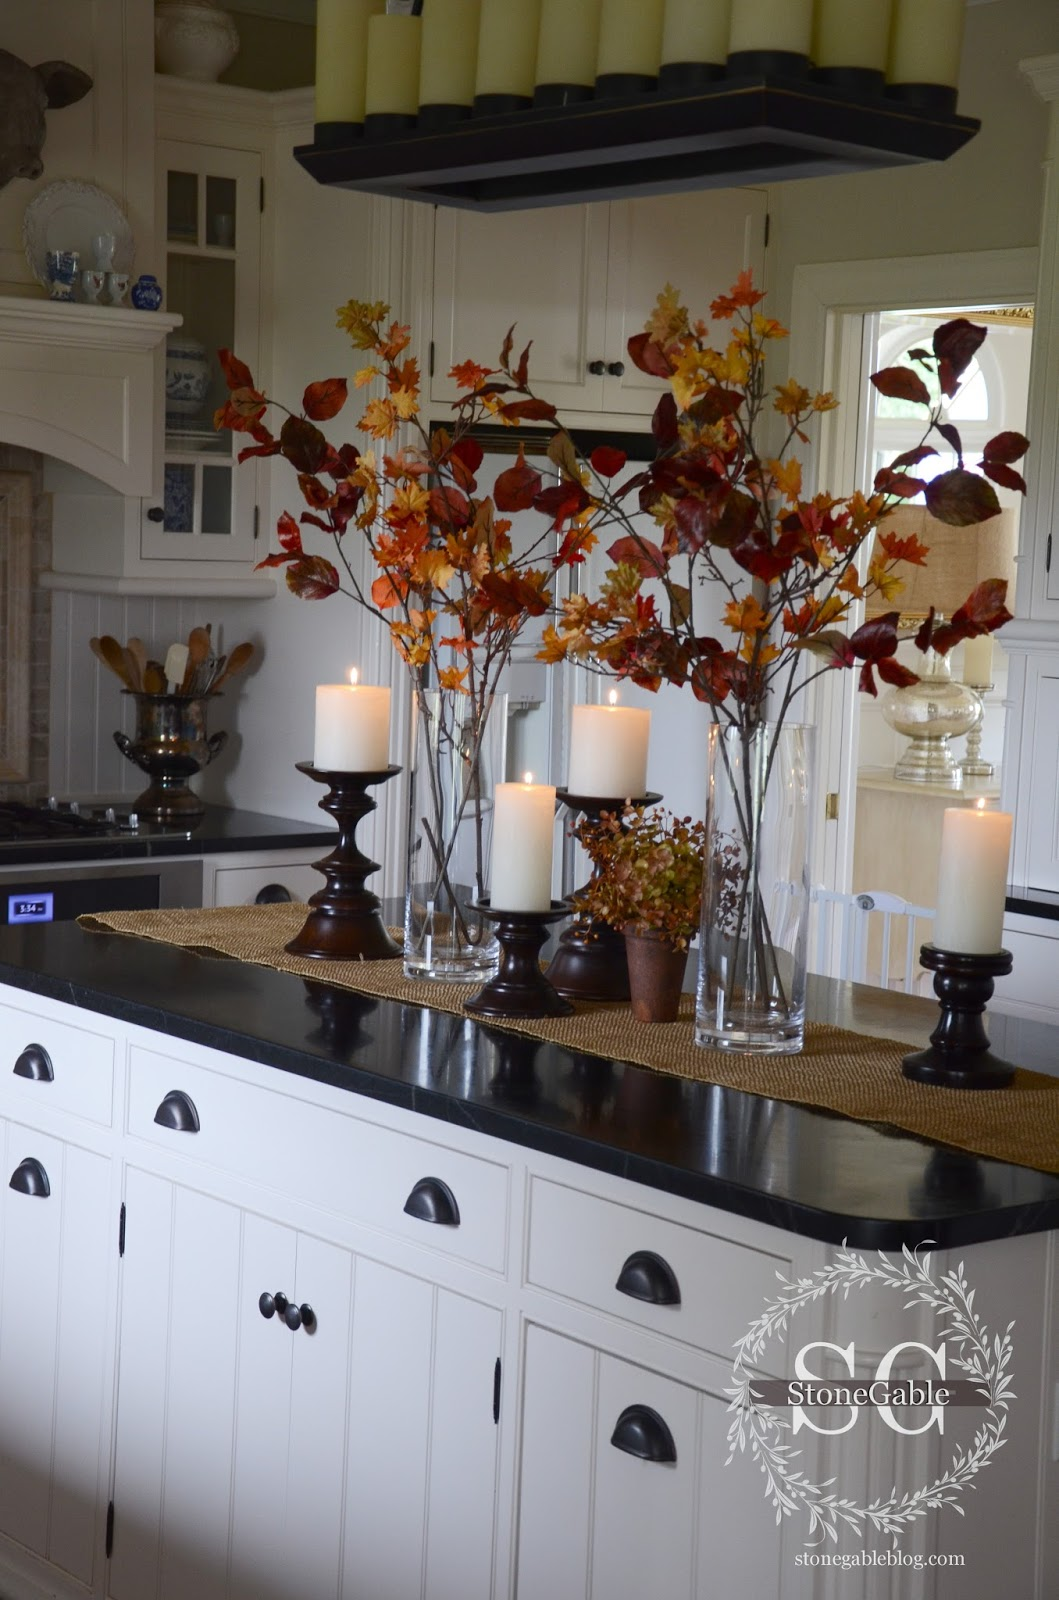 All about the details kitchen home tour stonegable for Kitchen table decoration ideas